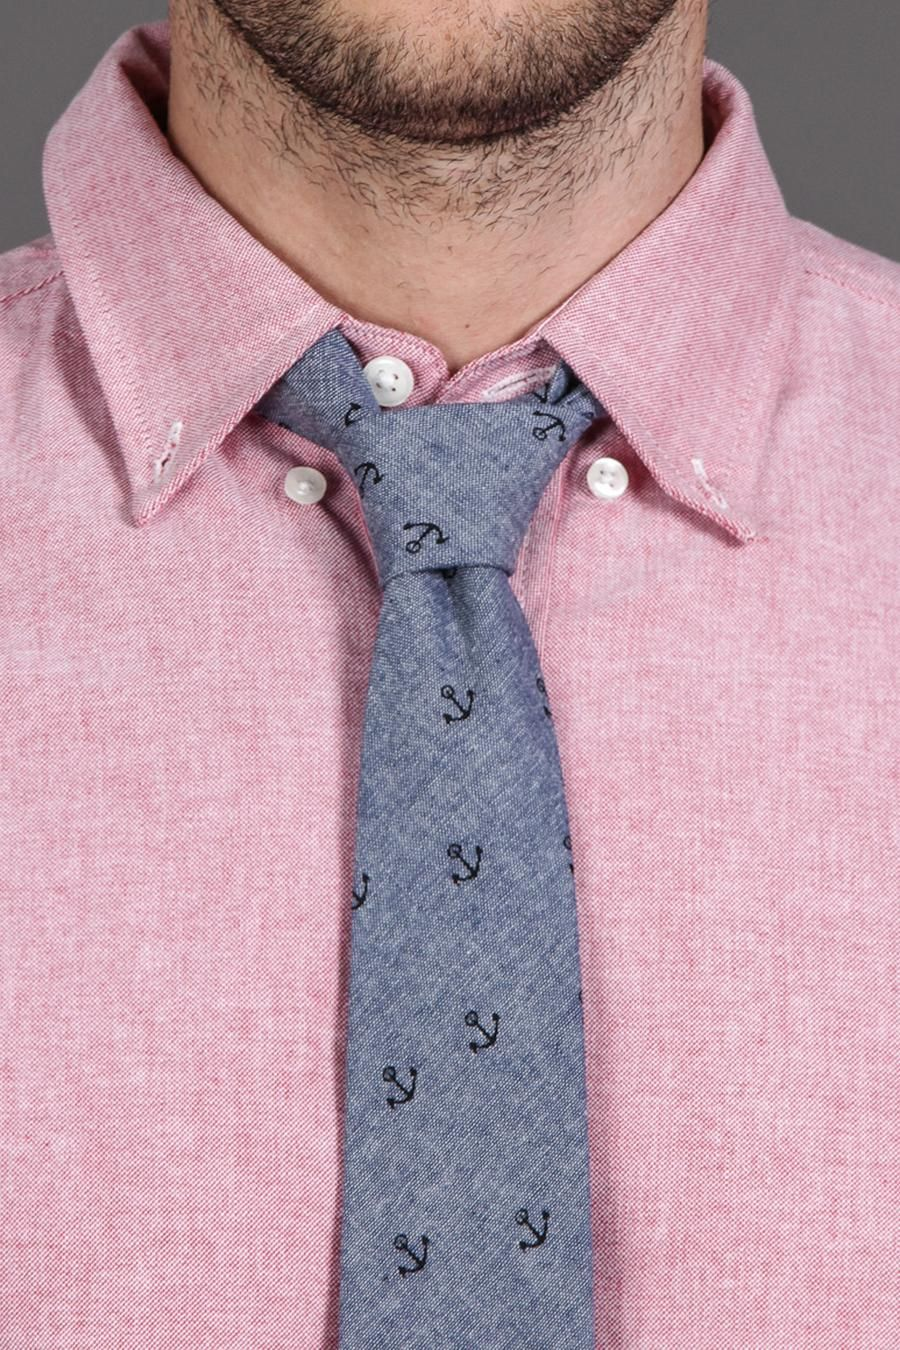 The Printed Anchor Chambray Necktie